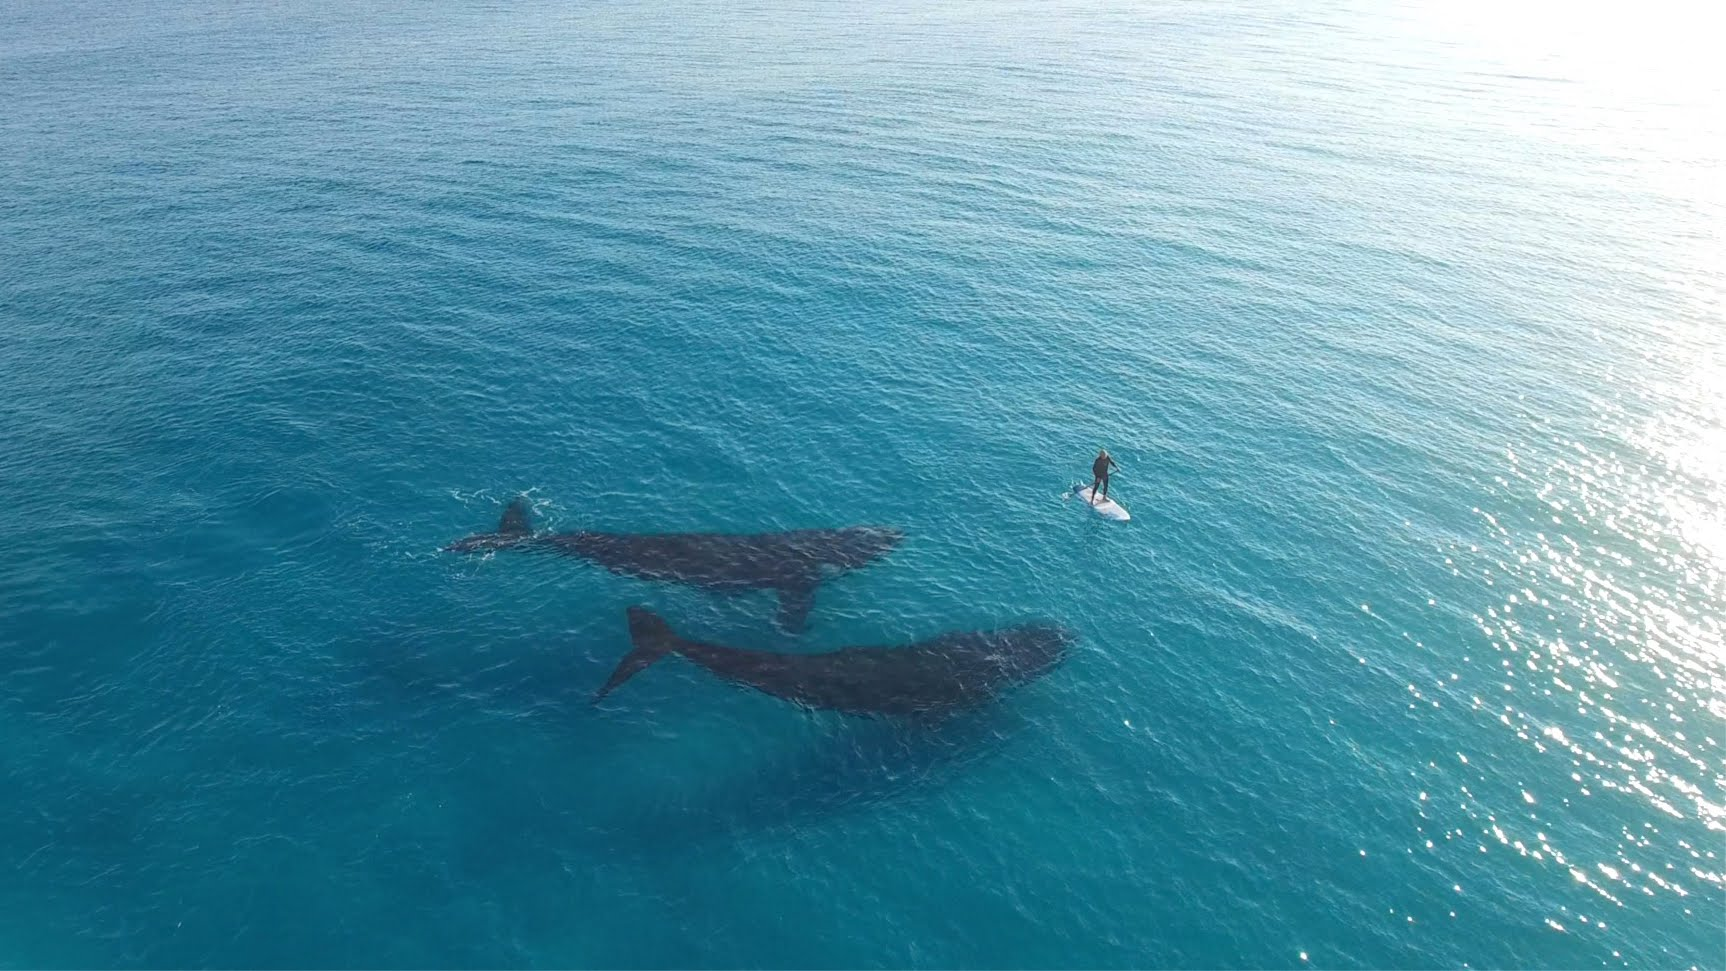 Incredible Drone Footage Shows Two Whales Swimming Alongside a Paddleboarder